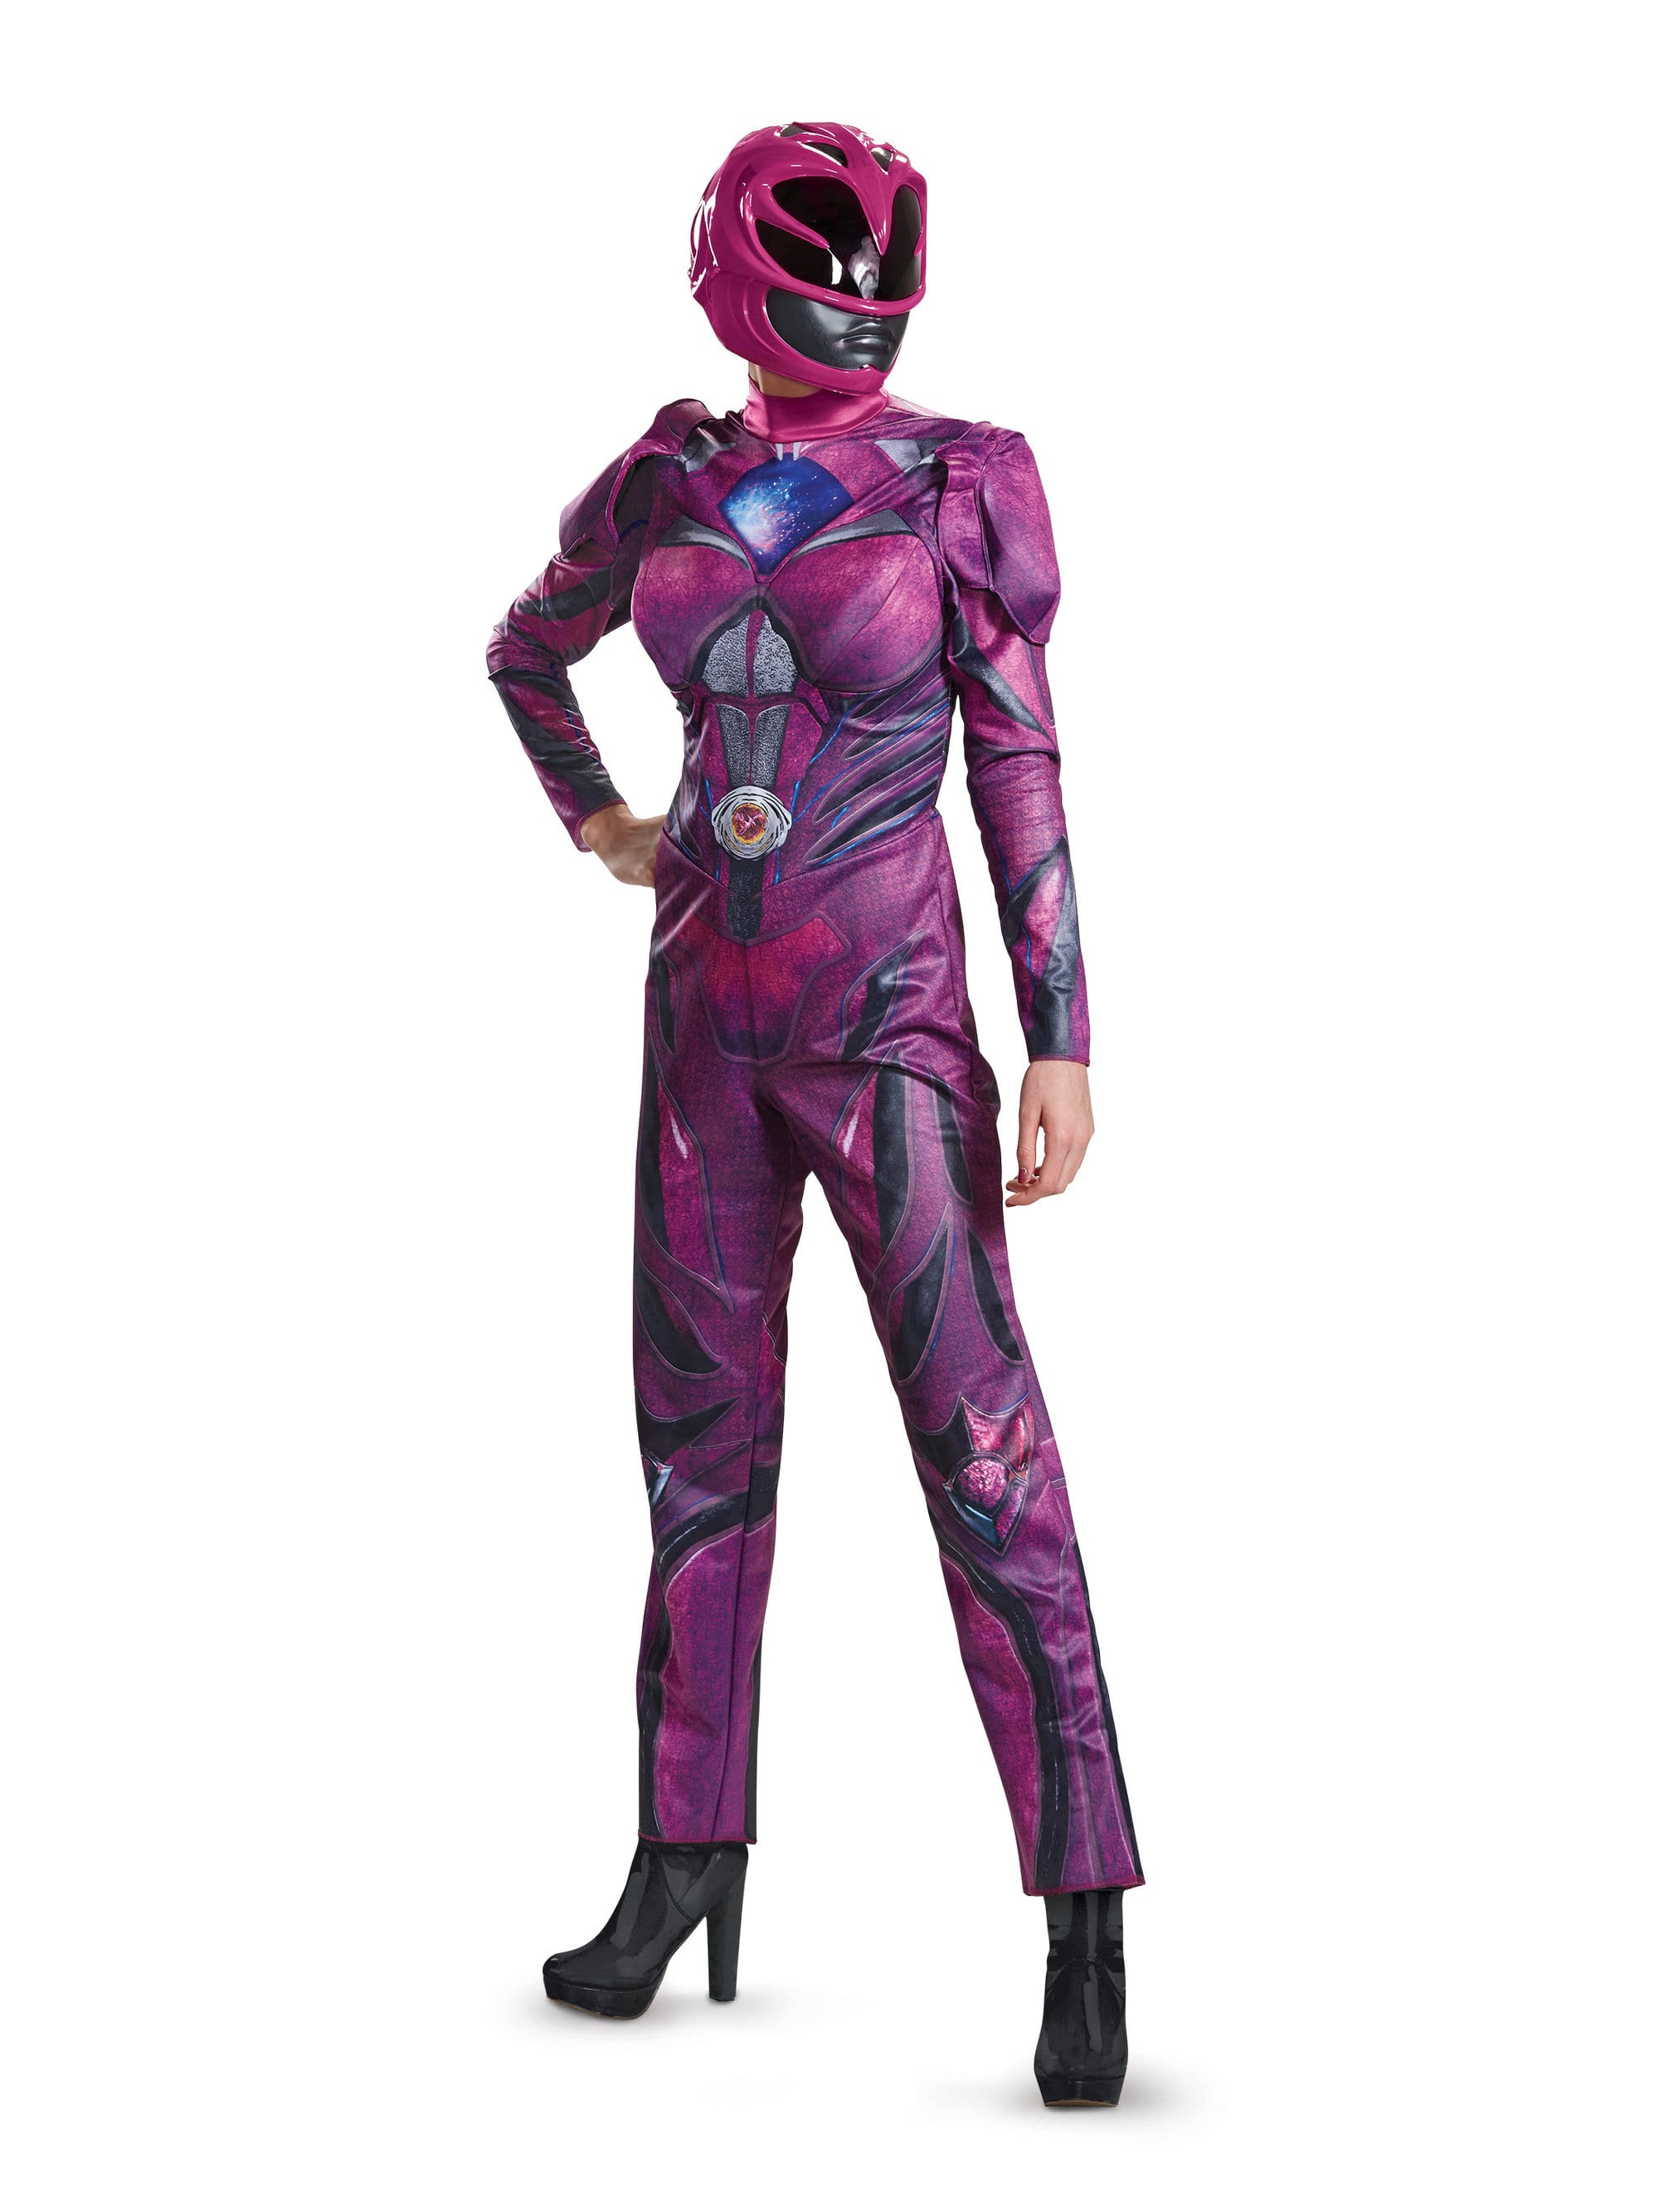 Deluxe Adult Pink Power Ranger Costume - Adult 2018 Halloween Costumes | BuyCostumes.com  sc 1 st  BuyCostumes.com : pink ranger halloween costume  - Germanpascual.Com